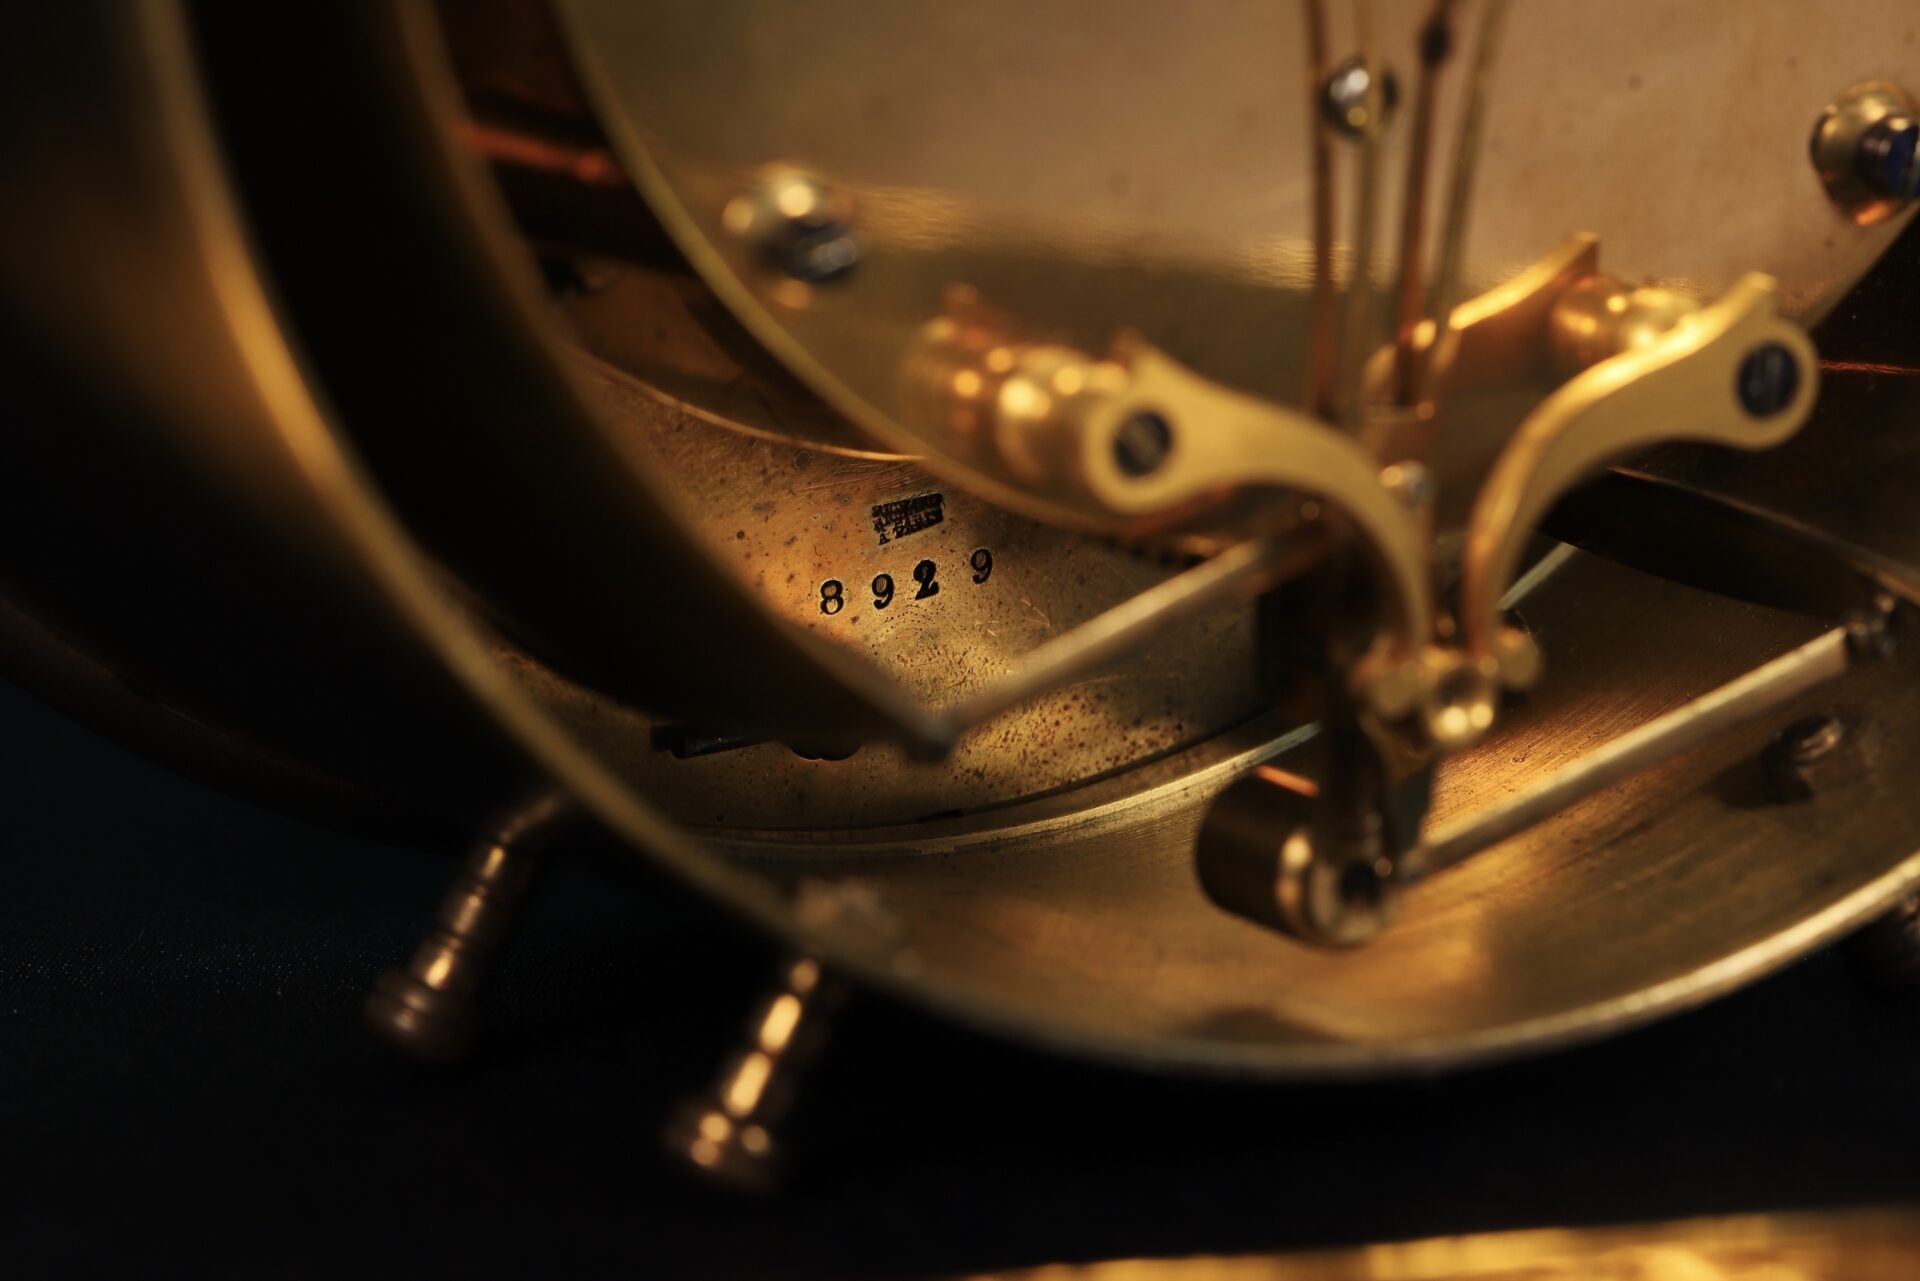 Close up of rear of Bourdon & Richard Barometer Clock No 79 c1880 showing serial number of the Bourdon movement